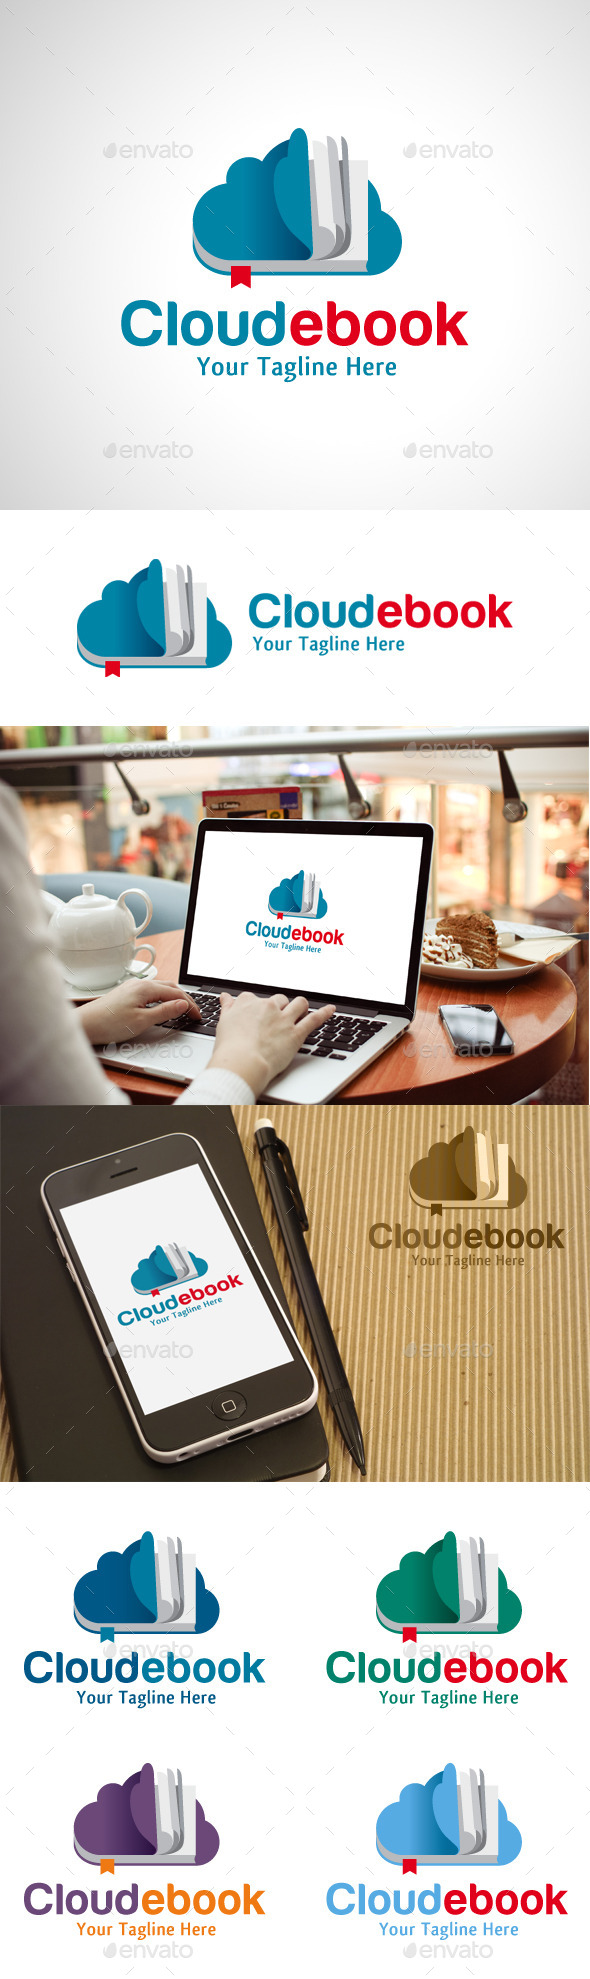 GraphicRiver Cloud Ebook Logo 10524525